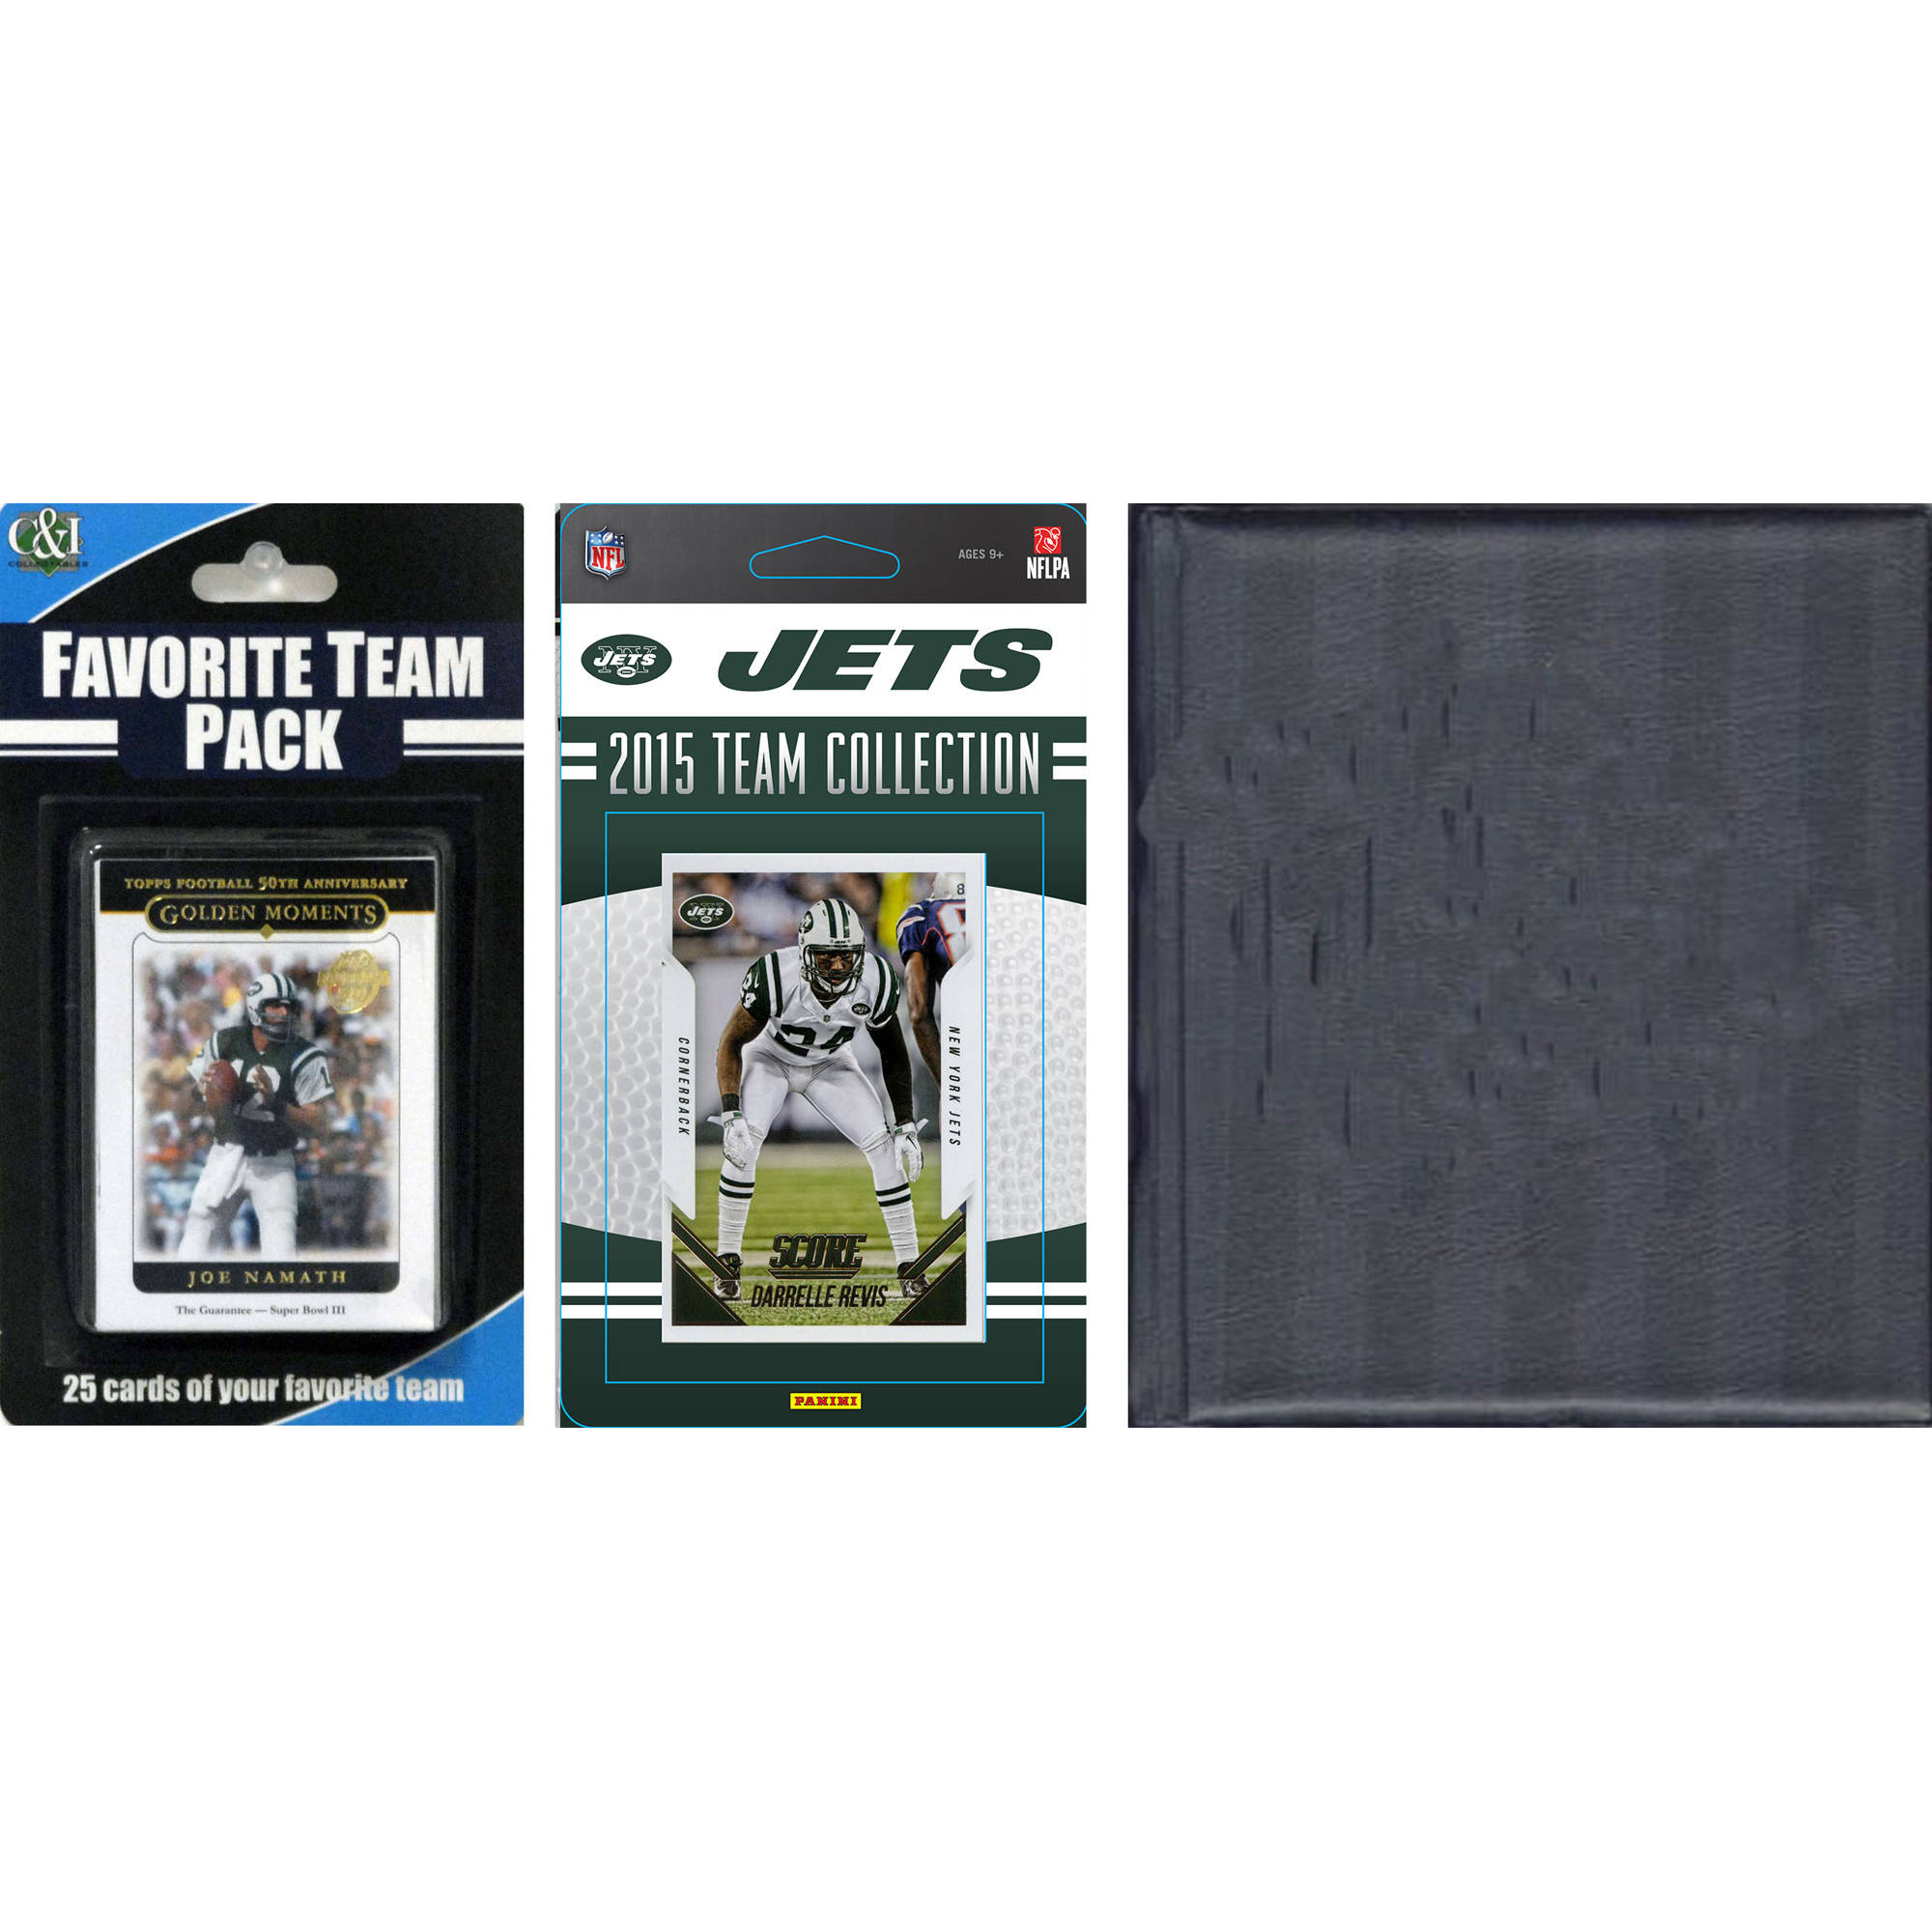 C&I Collectables NFL New York Jets Licensed 2015 Score Team Set and Favorite Player Trading Card Pack Plus Storage Album